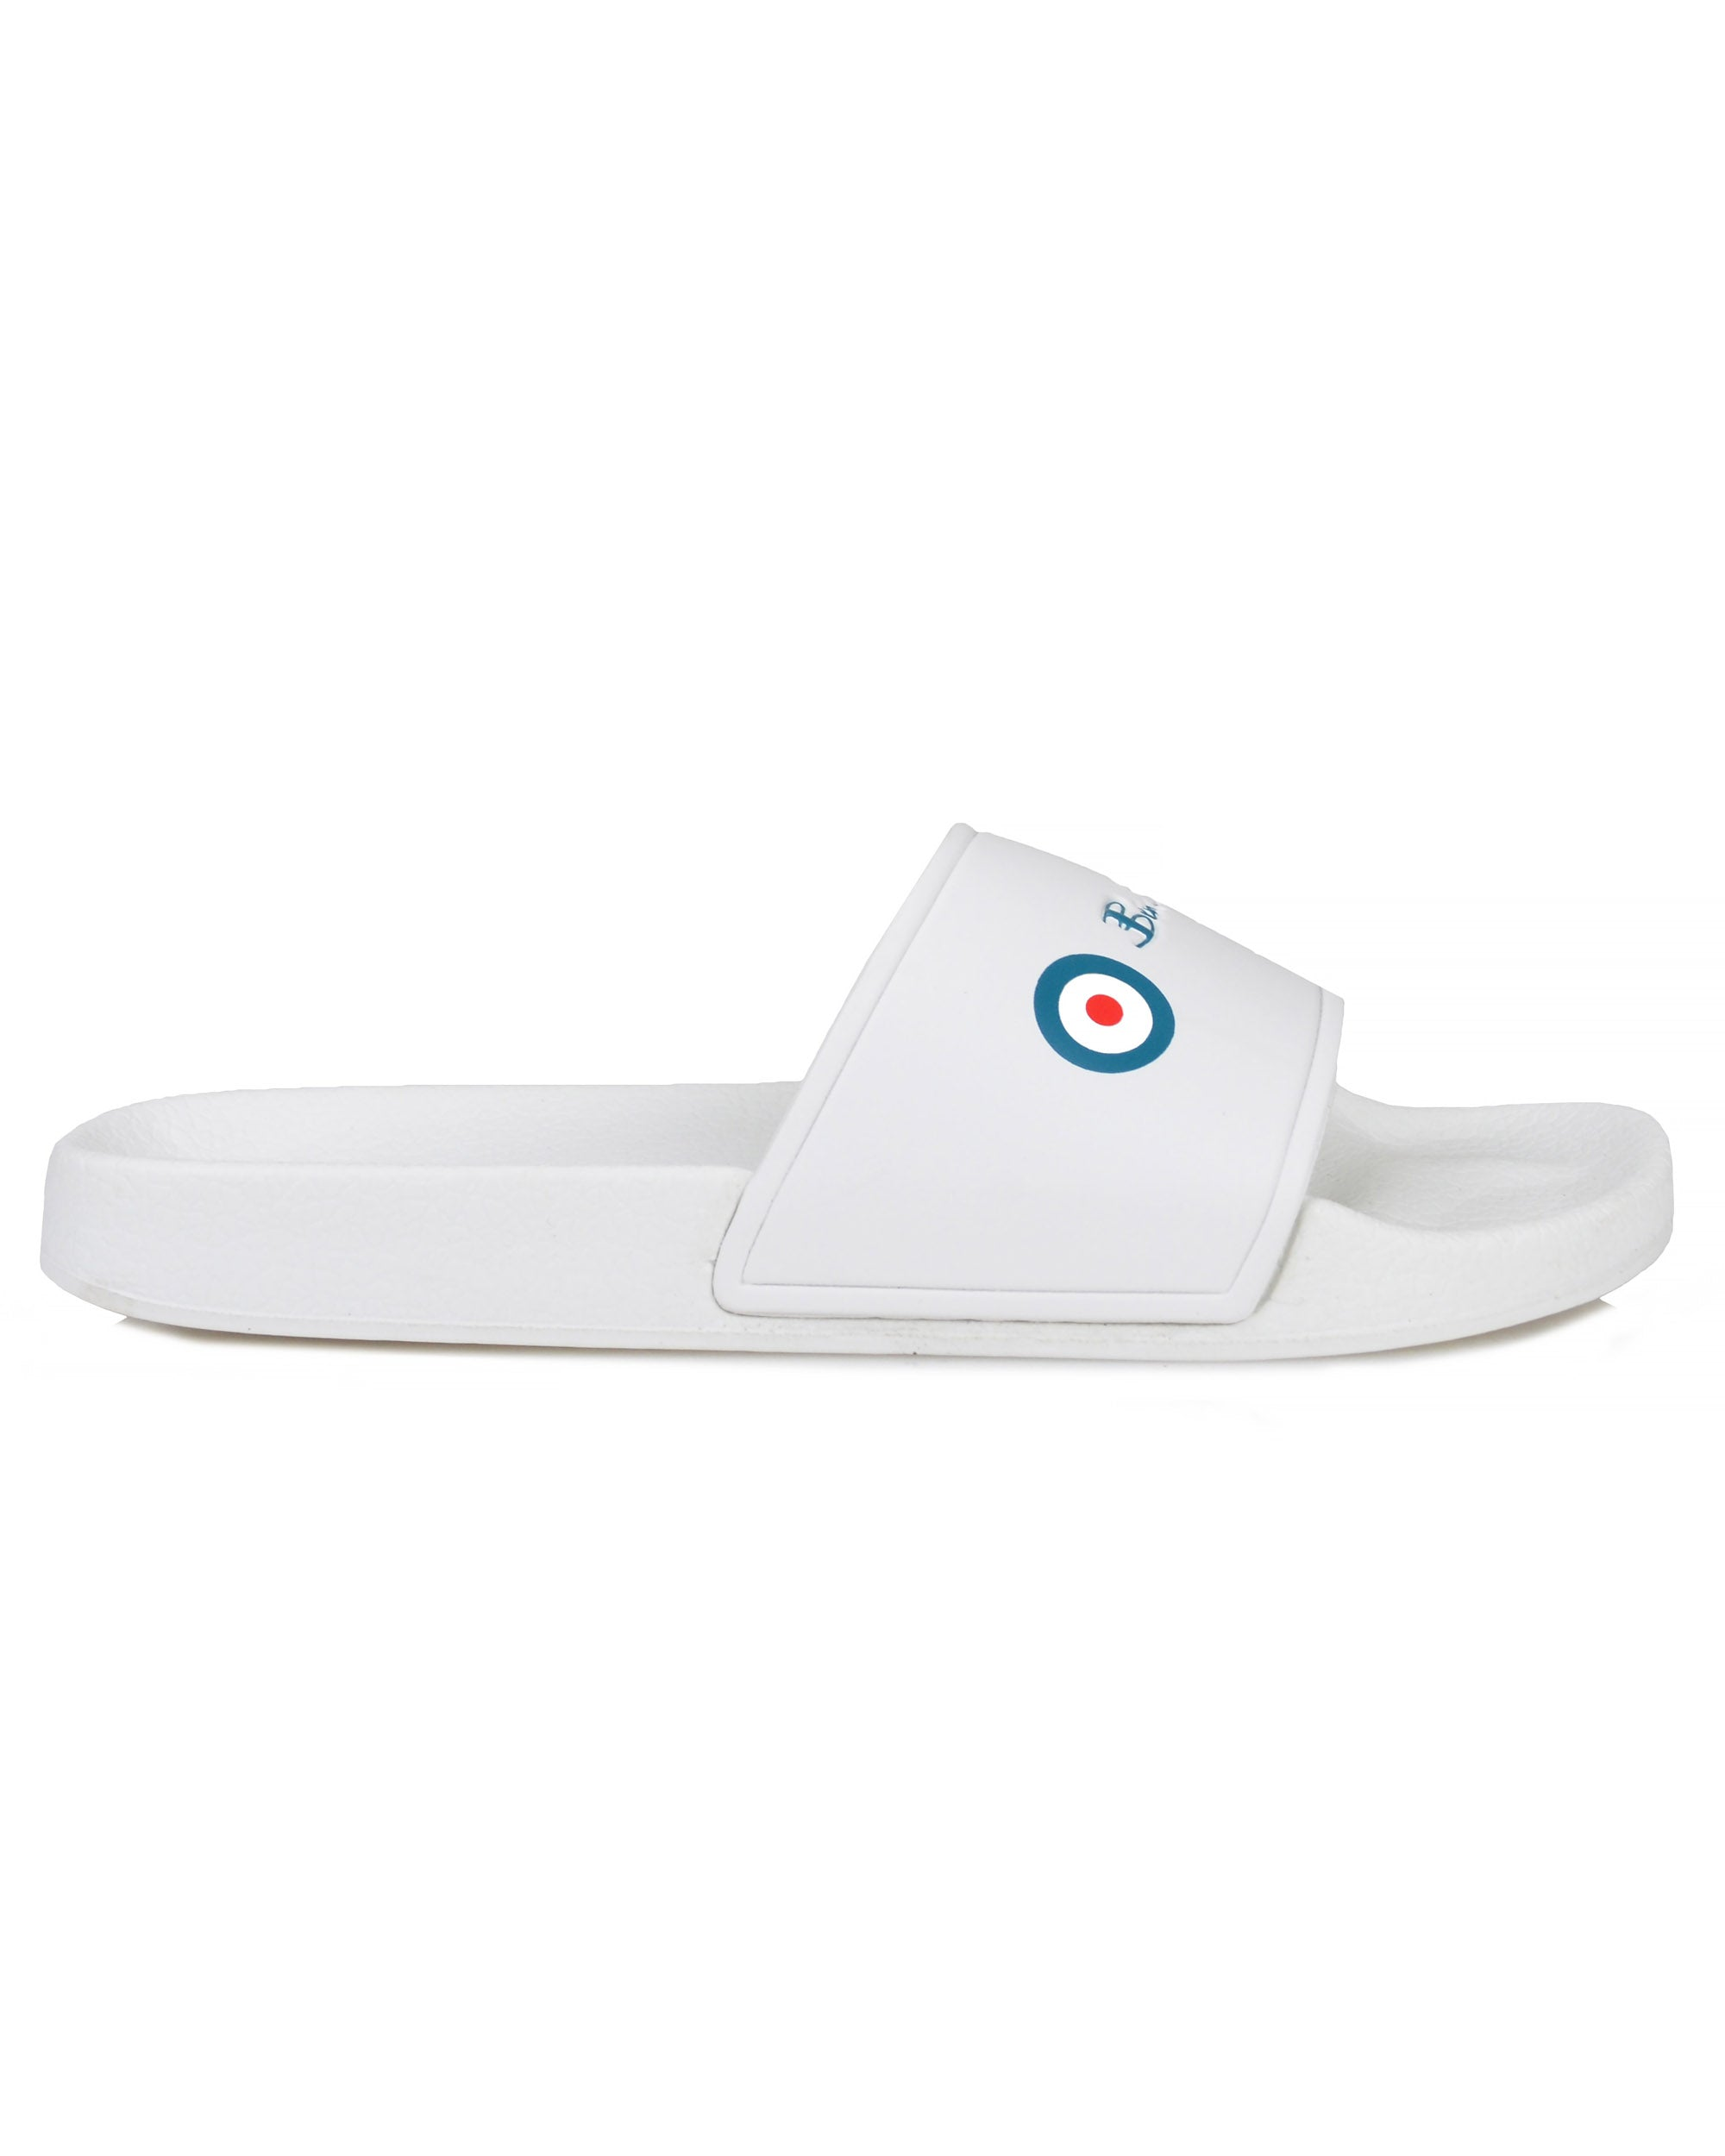 Logo Slip-On Pool Slide - White